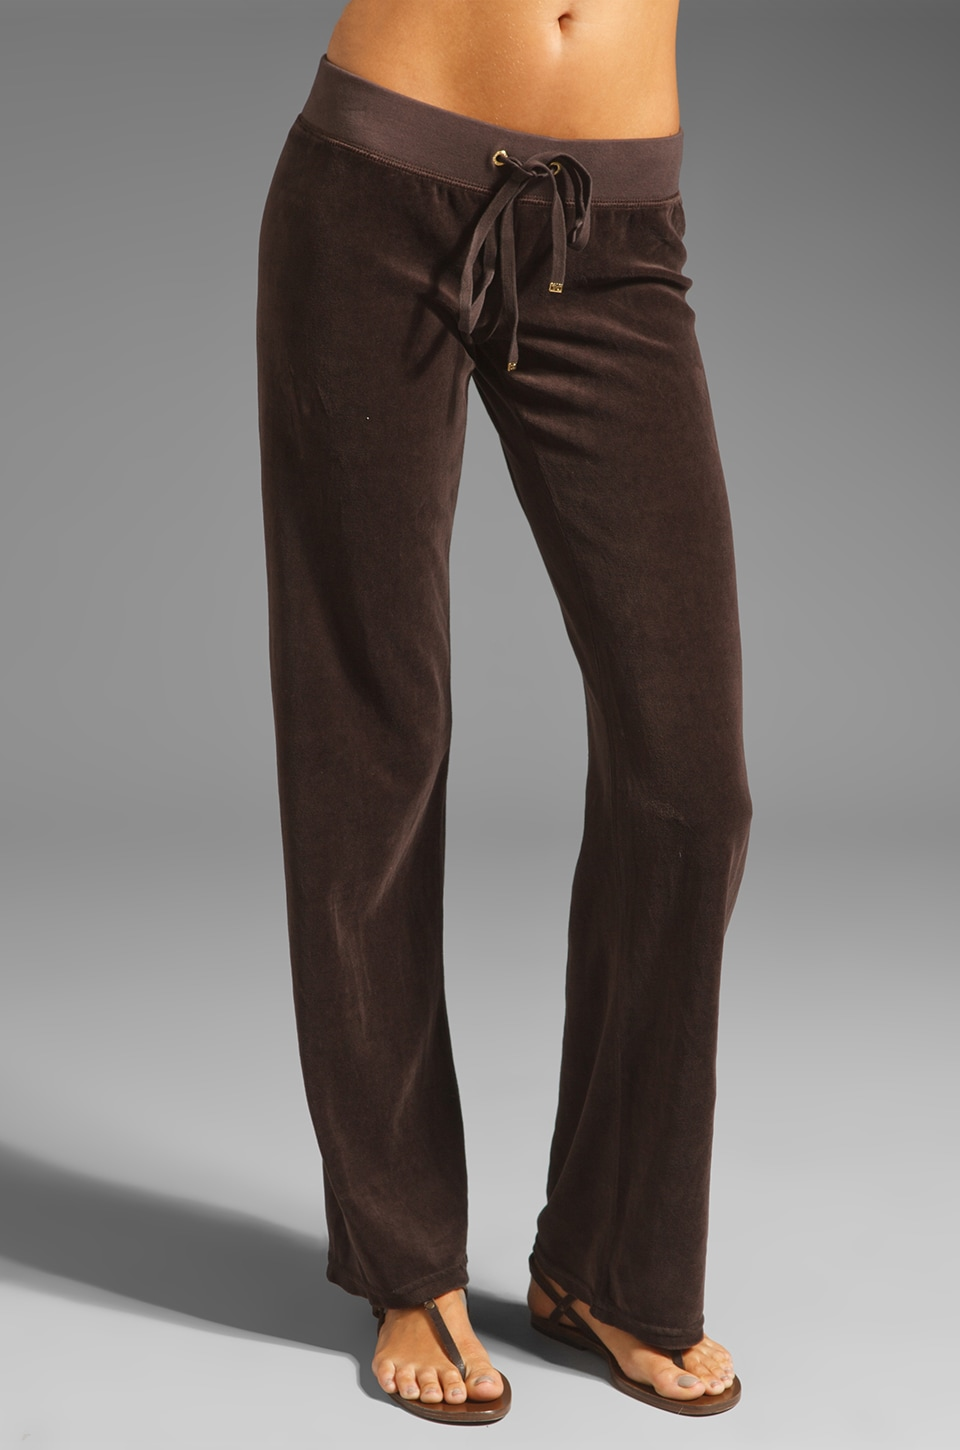 Juicy Couture Original Leg Pant in Chestnut